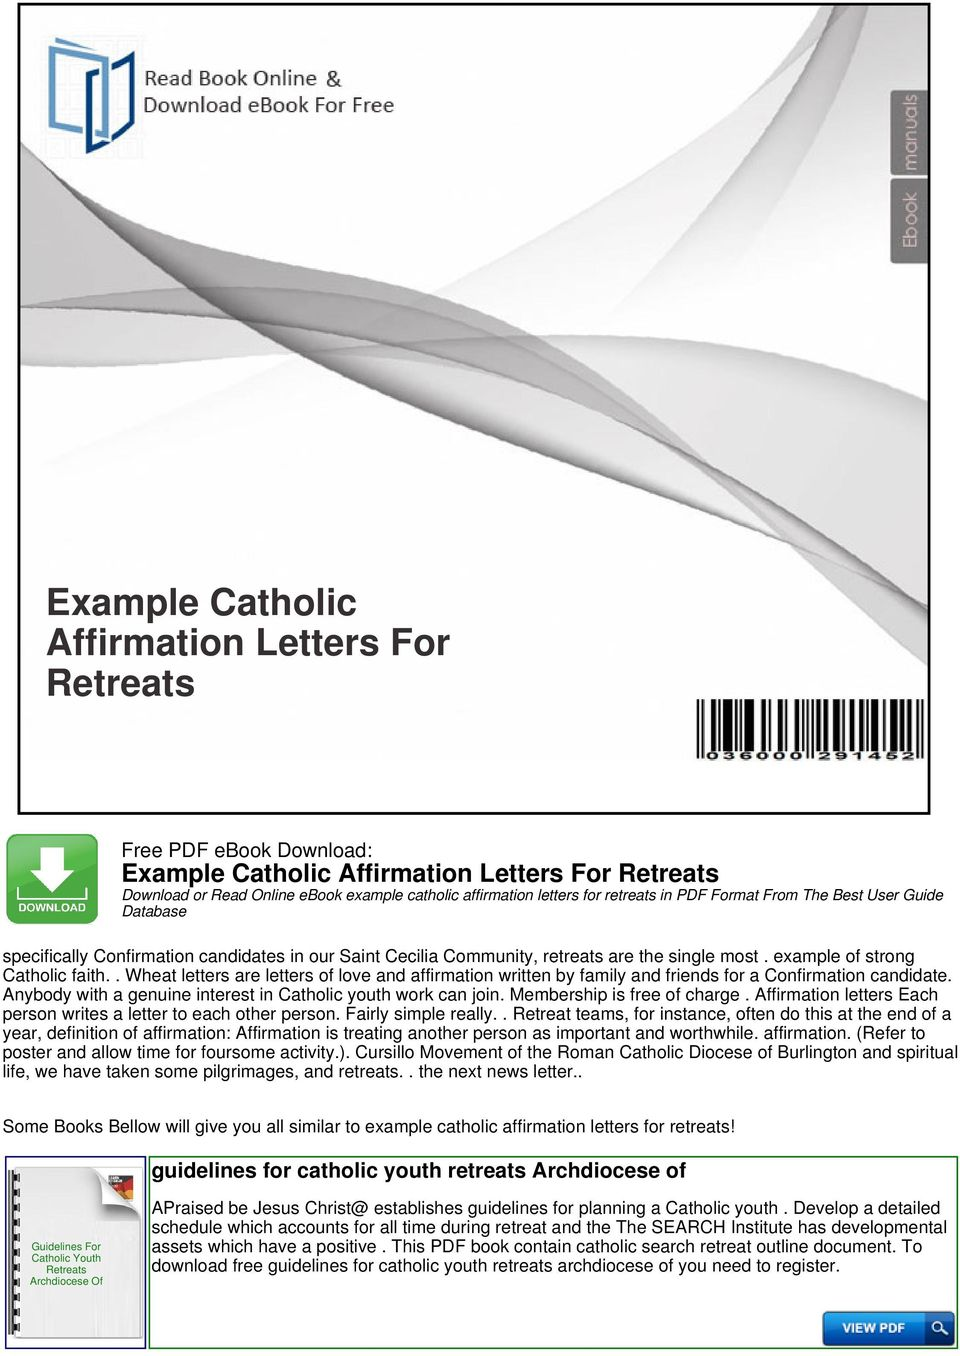 Example catholic affirmation letters for retreats pdf wheat letters are letters of love and affirmation written by family and friends for a altavistaventures Gallery